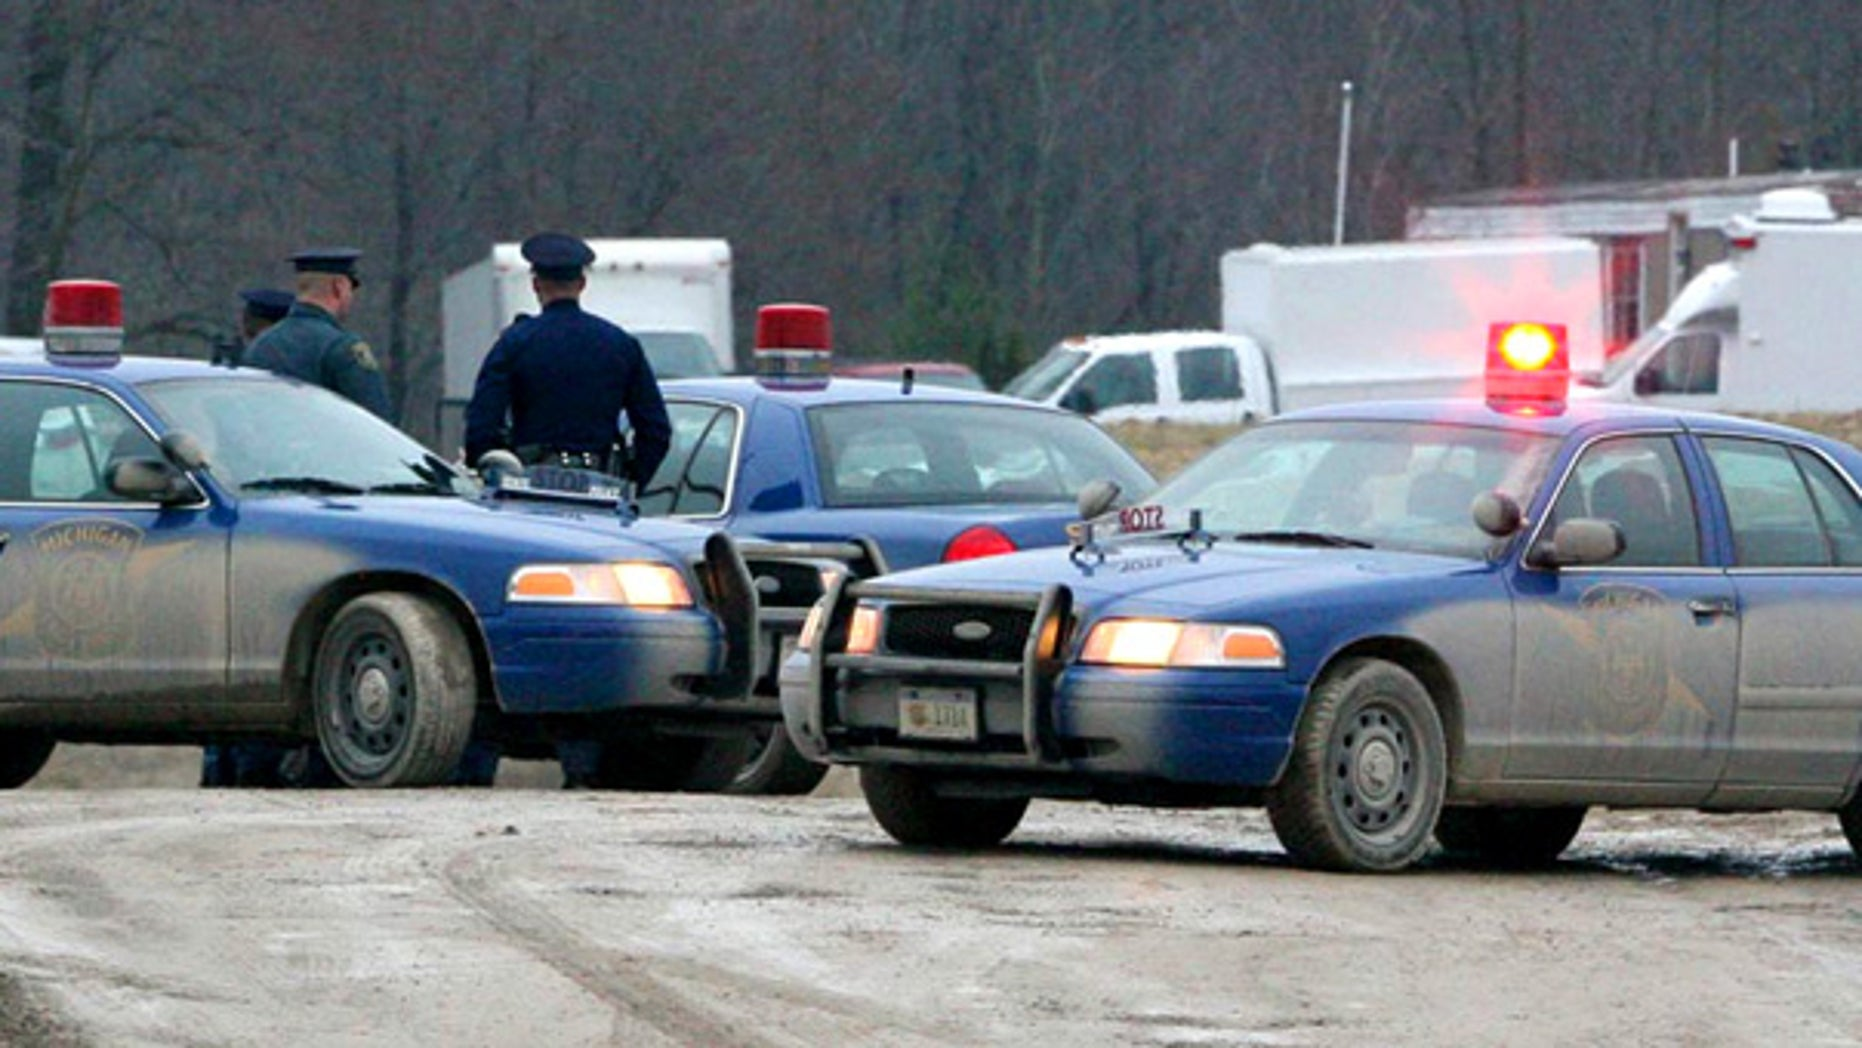 Mar. 28: Michigan State Police guard a home in Clayton after the FBI raided the home of a suspected militia leader.